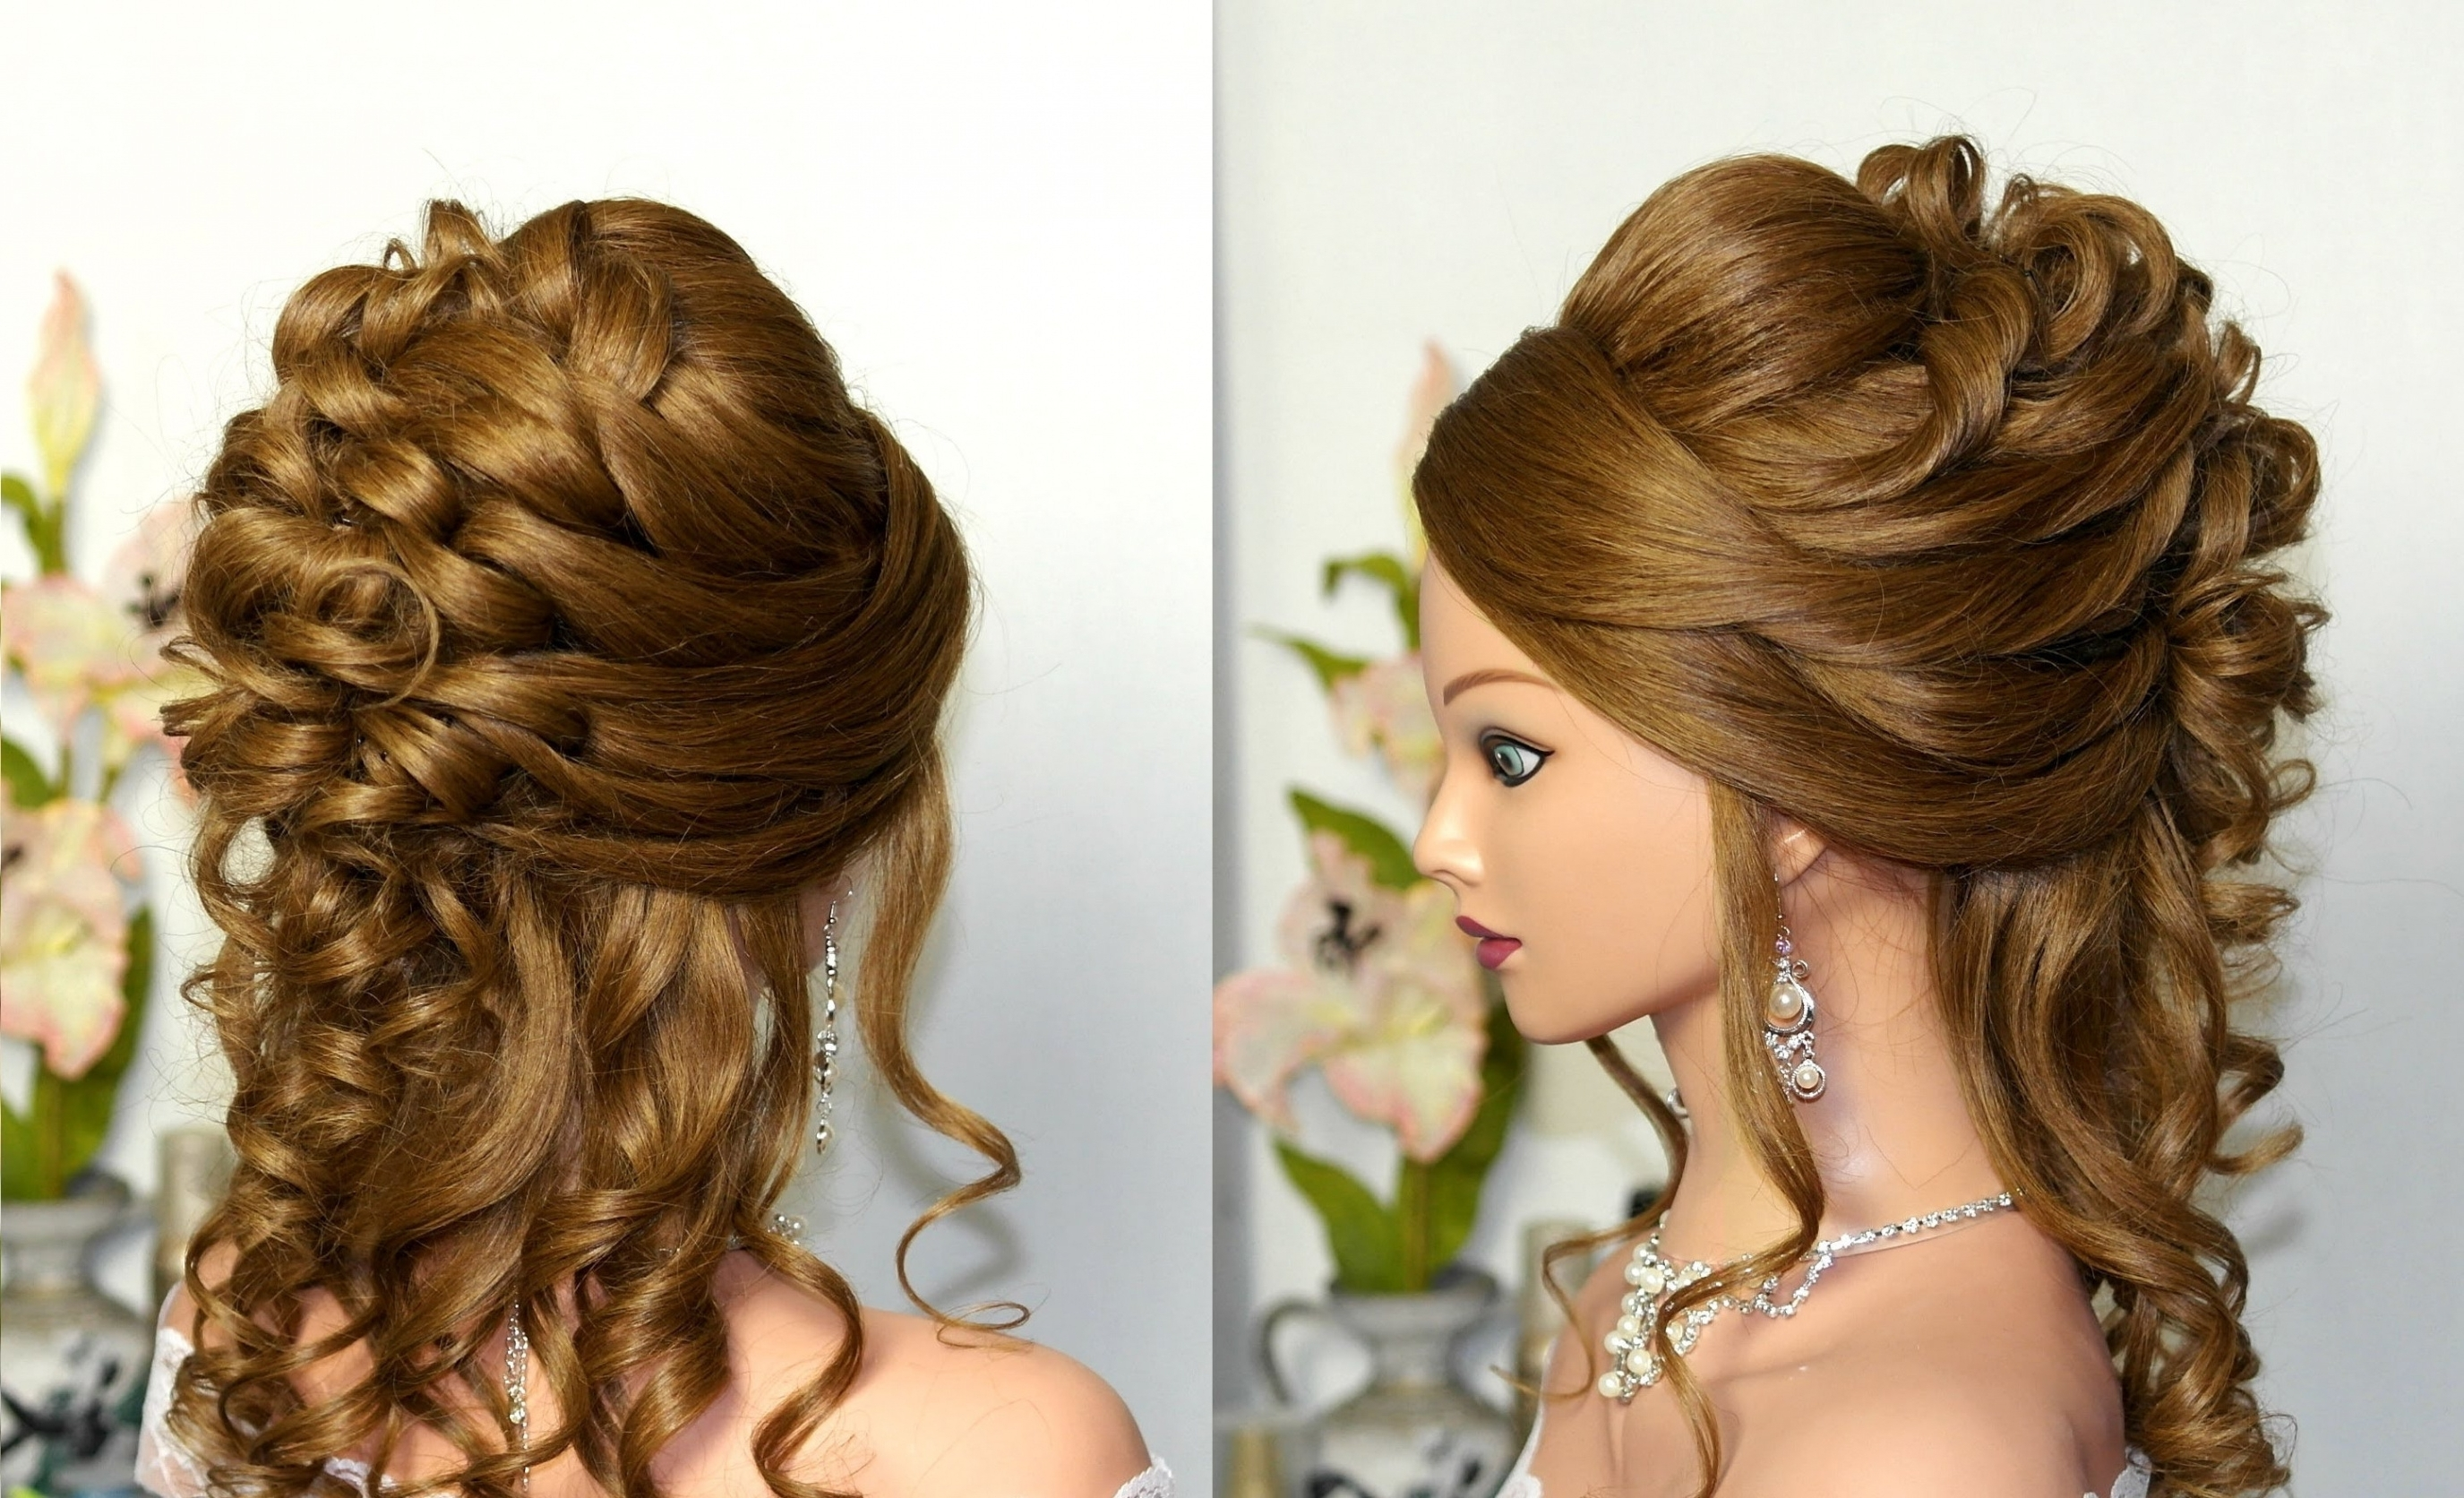 Hair Updo Hairstyles Curly Wedding Prom Hairstyle For Long Hair In Pretty Updo Hairstyles For Long Hair (View 11 of 15)